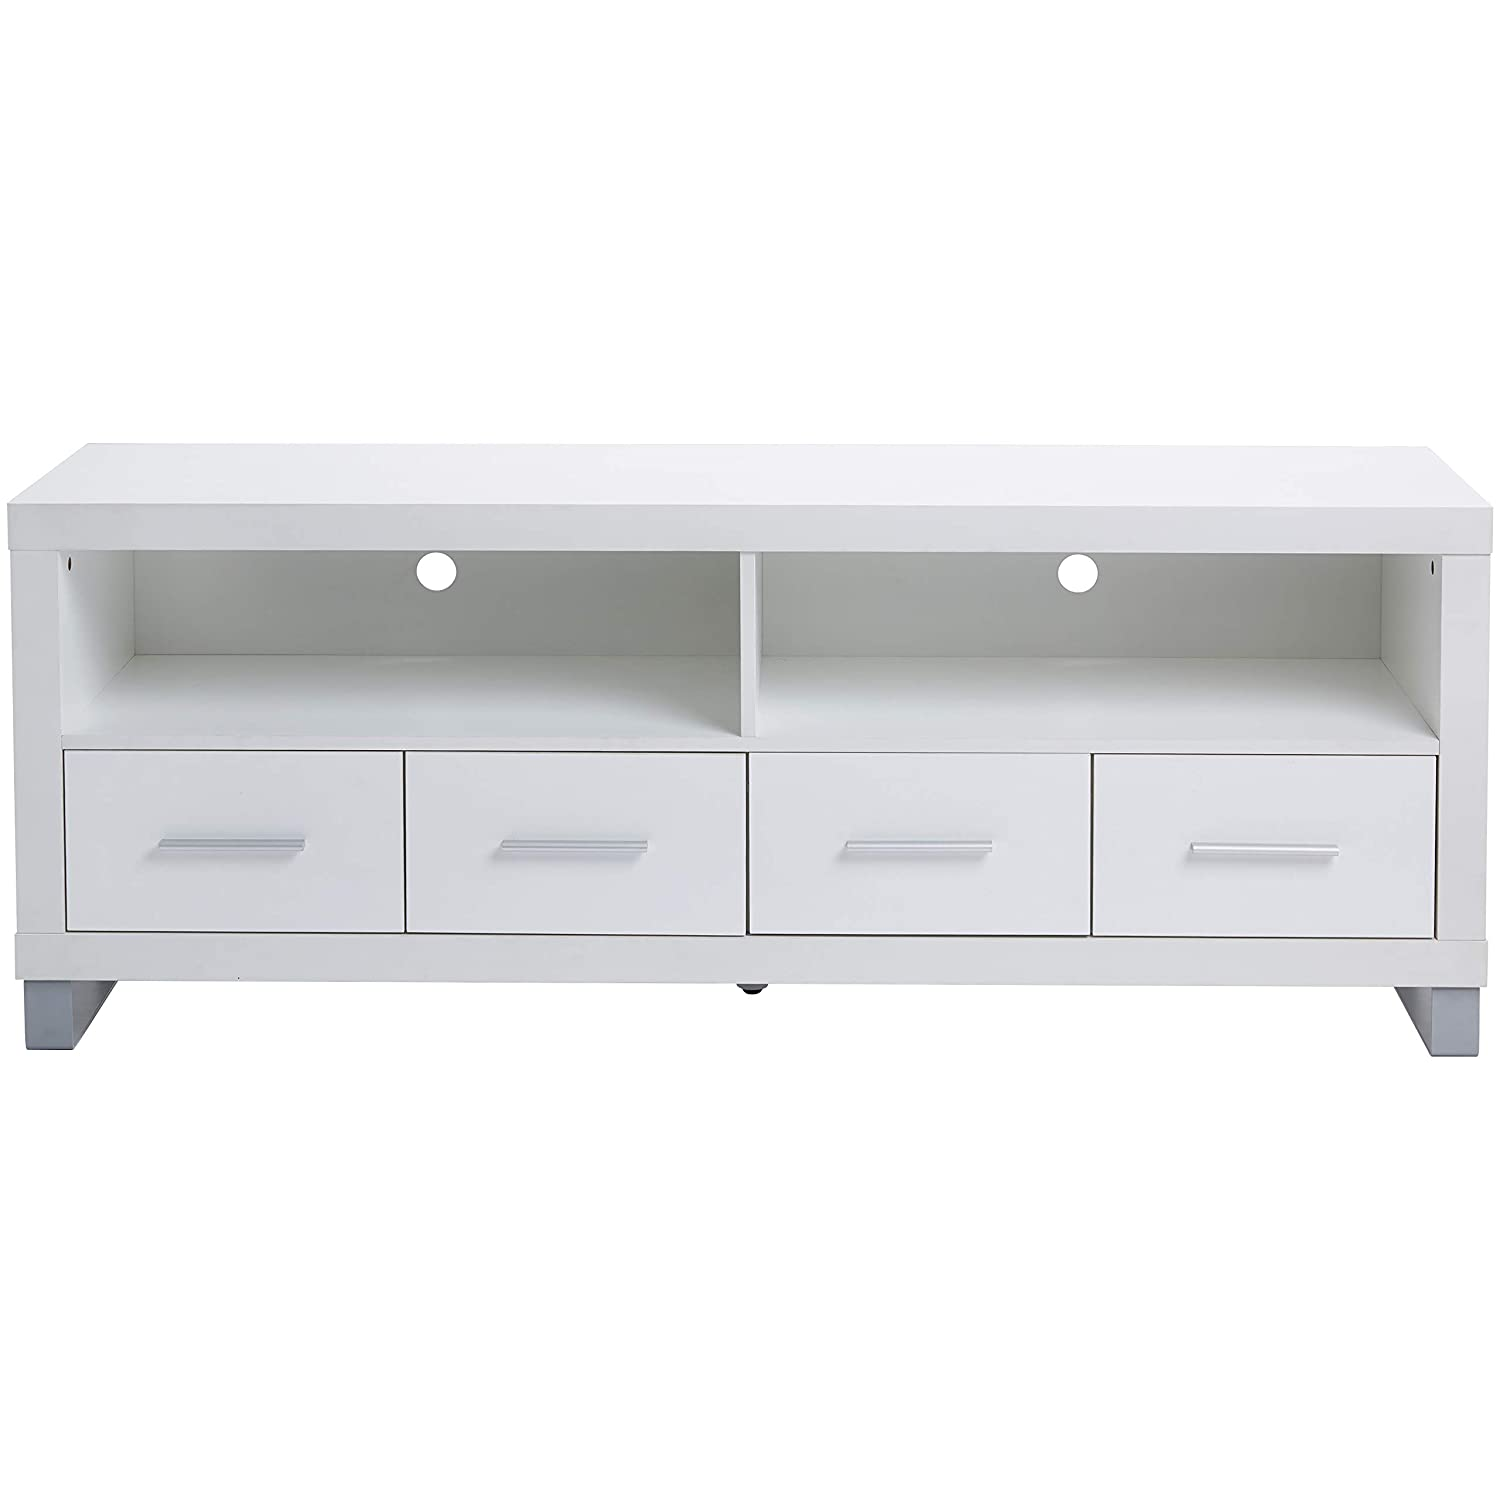 Rockpoint Cosmopolitan 60-Inch TV Stand Media Console with Metal Legs, Snow White